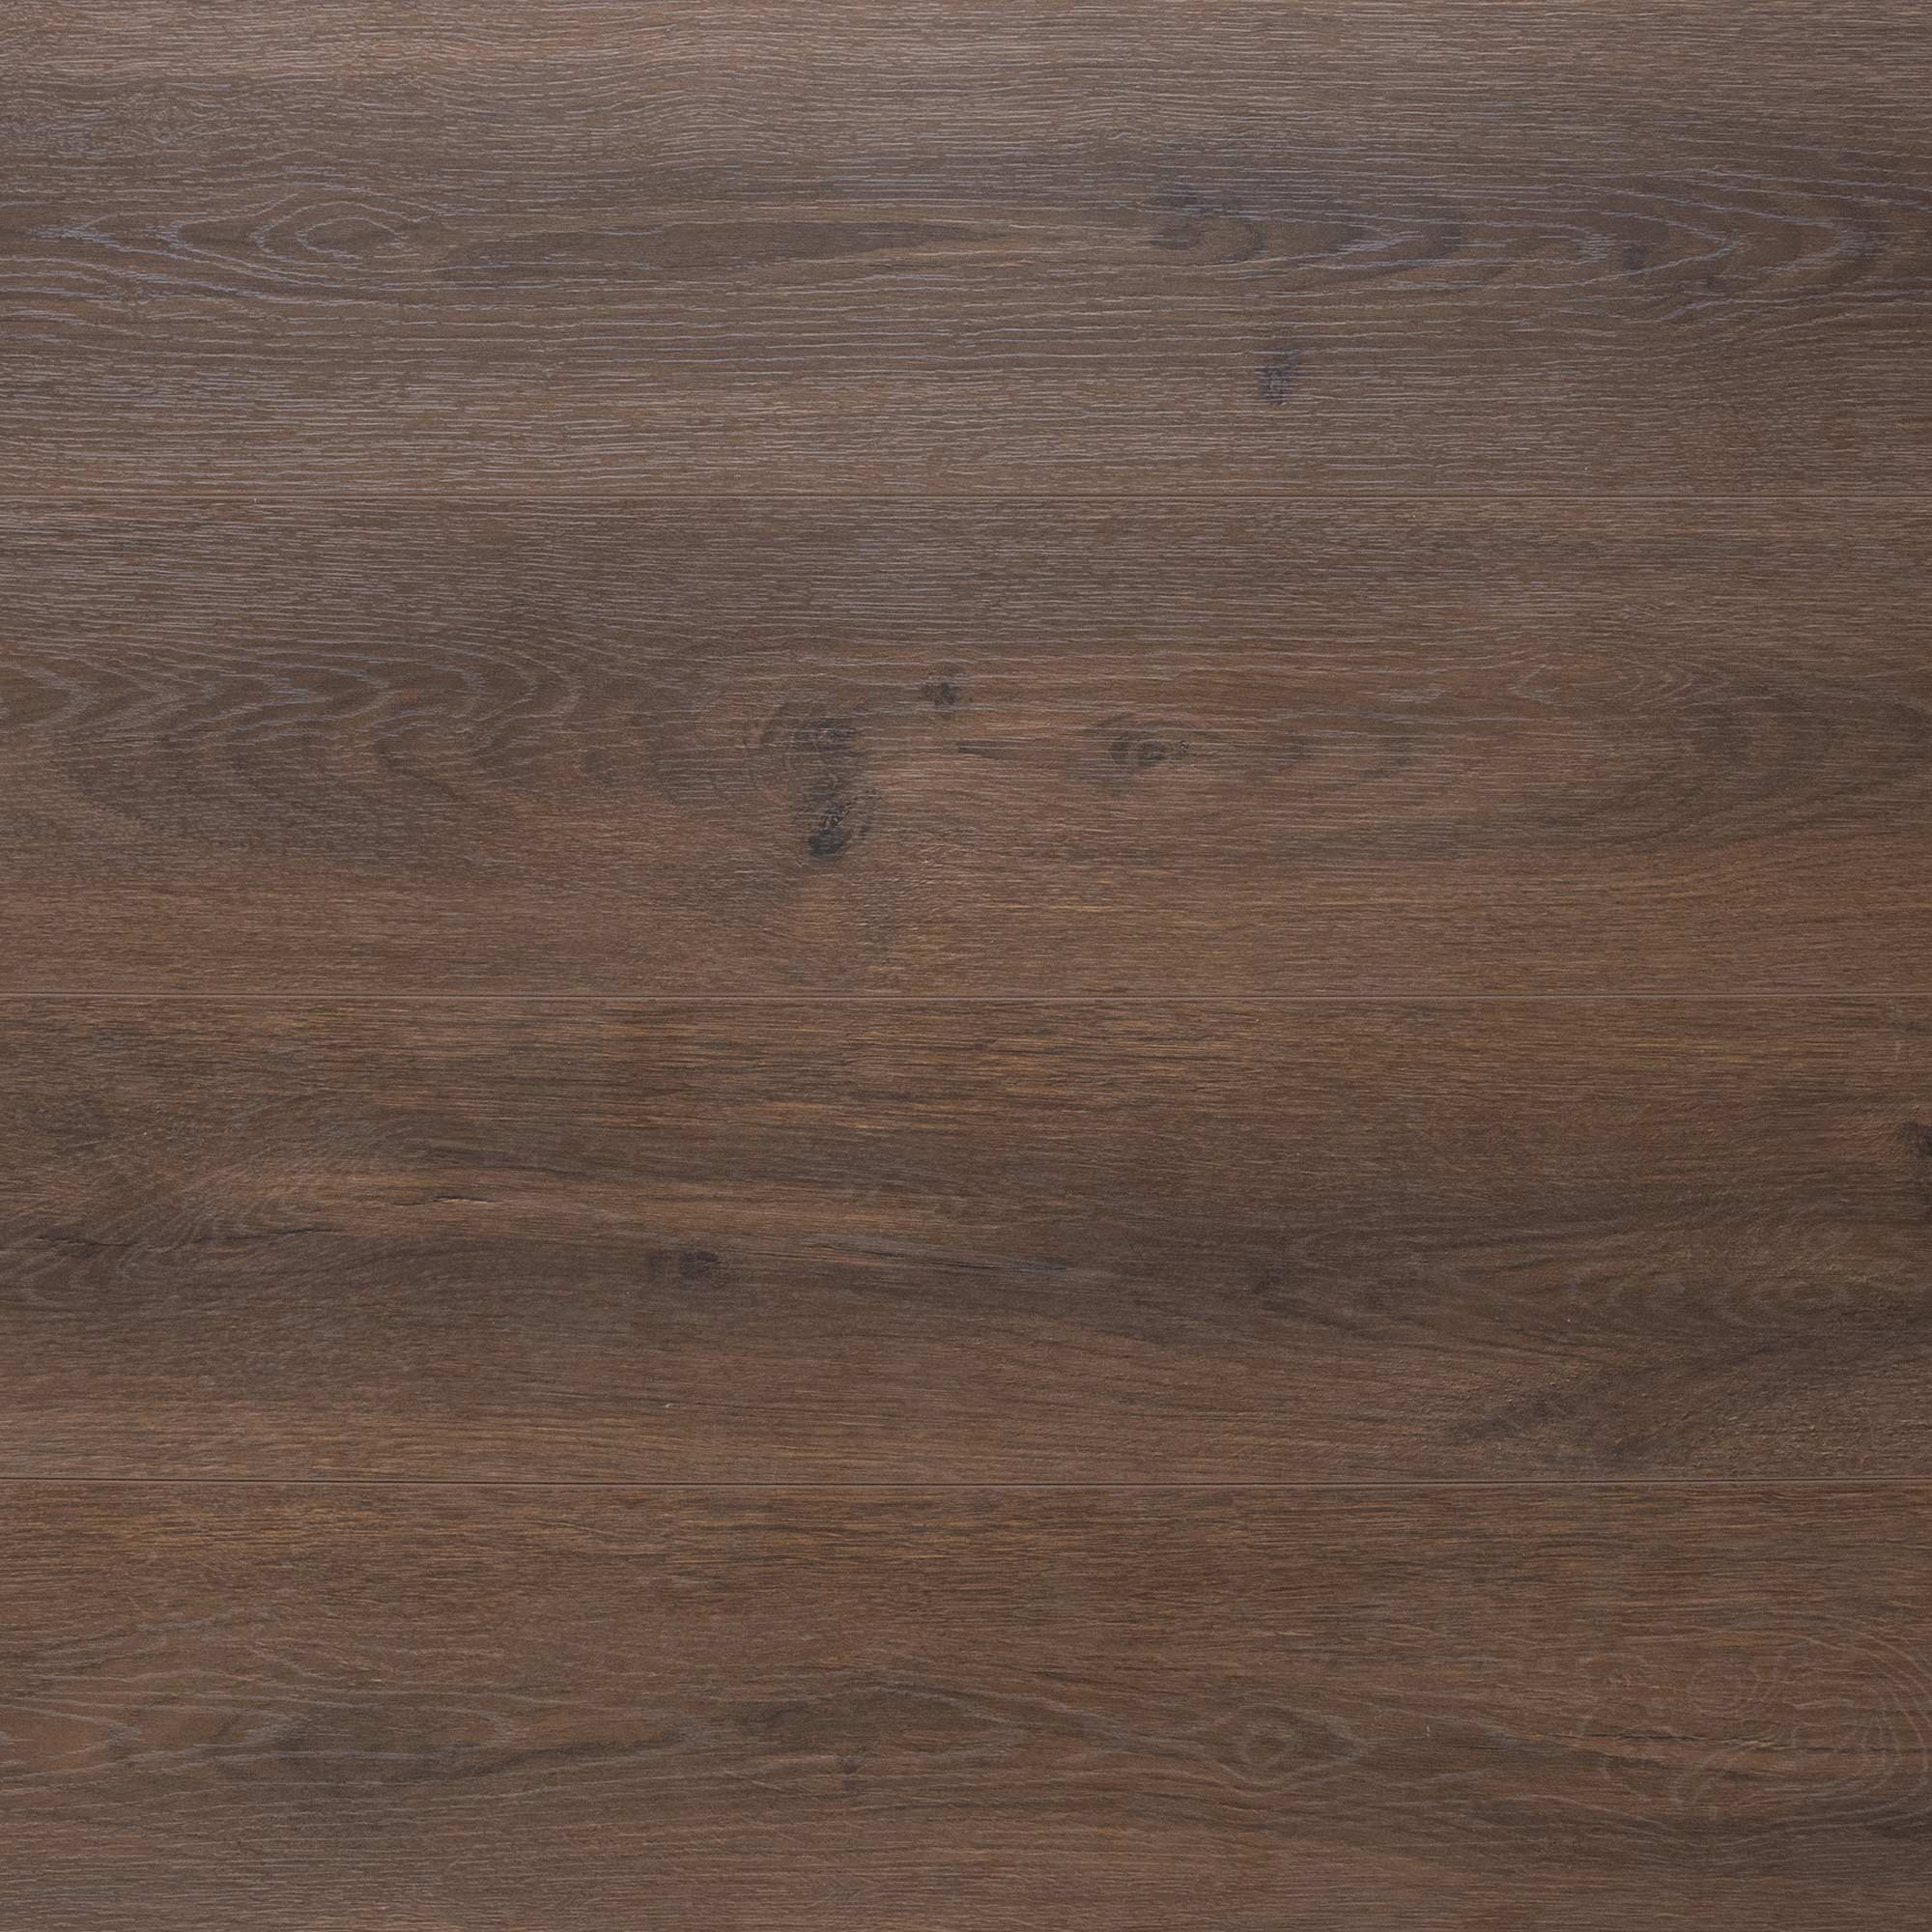 Rich Walnut Laminate | AC4 8mm